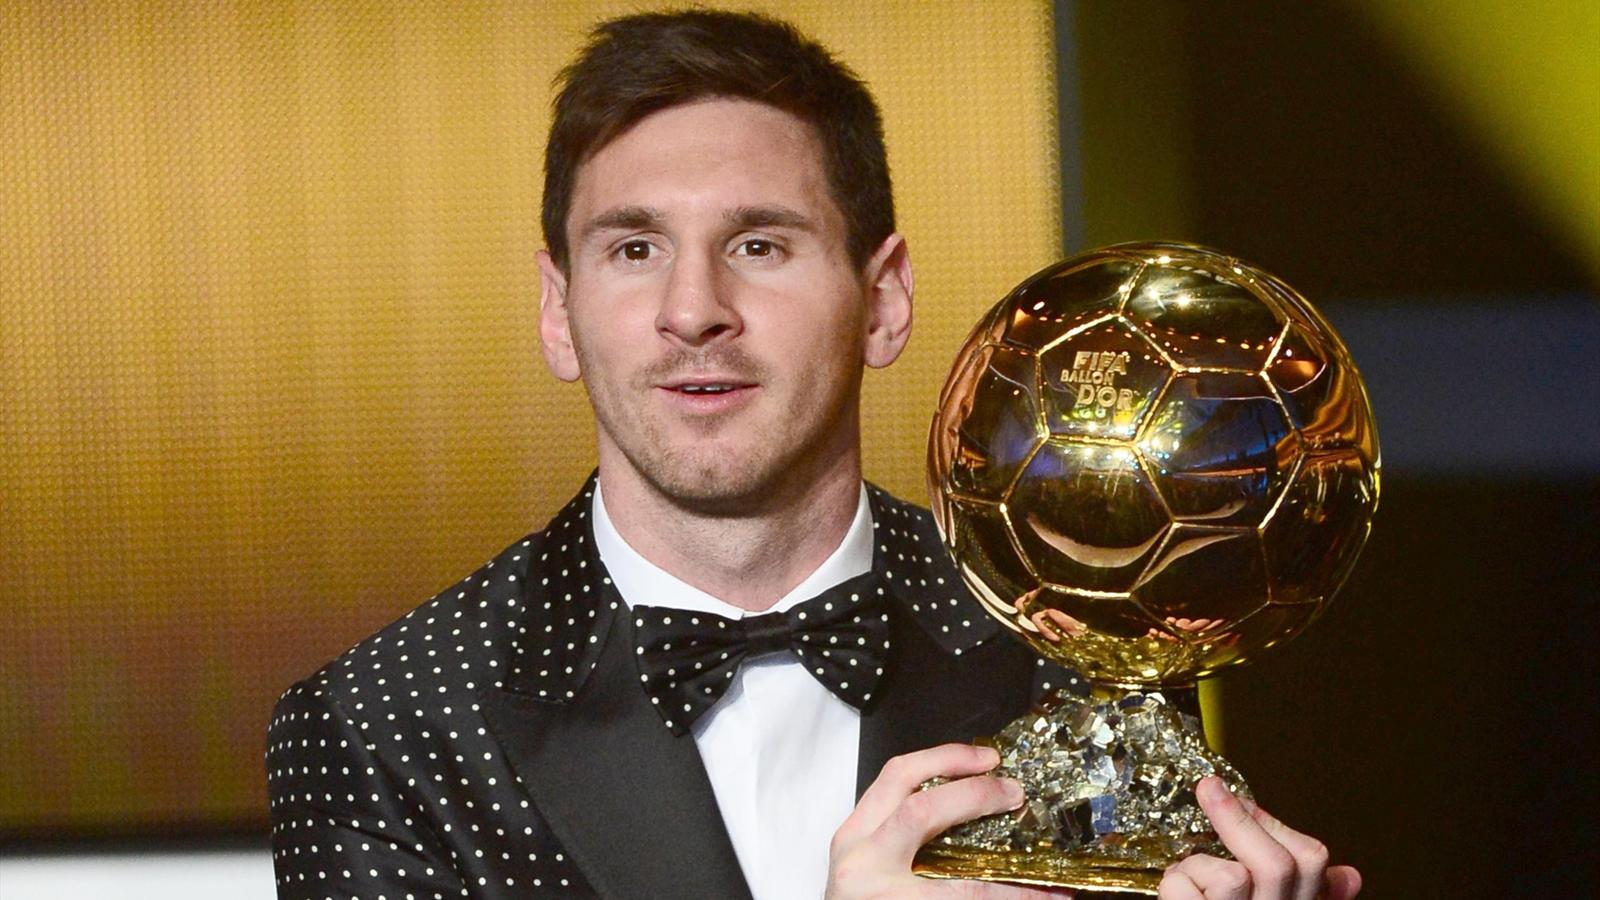 FIFA Ballon d'Or - Lionel Messi